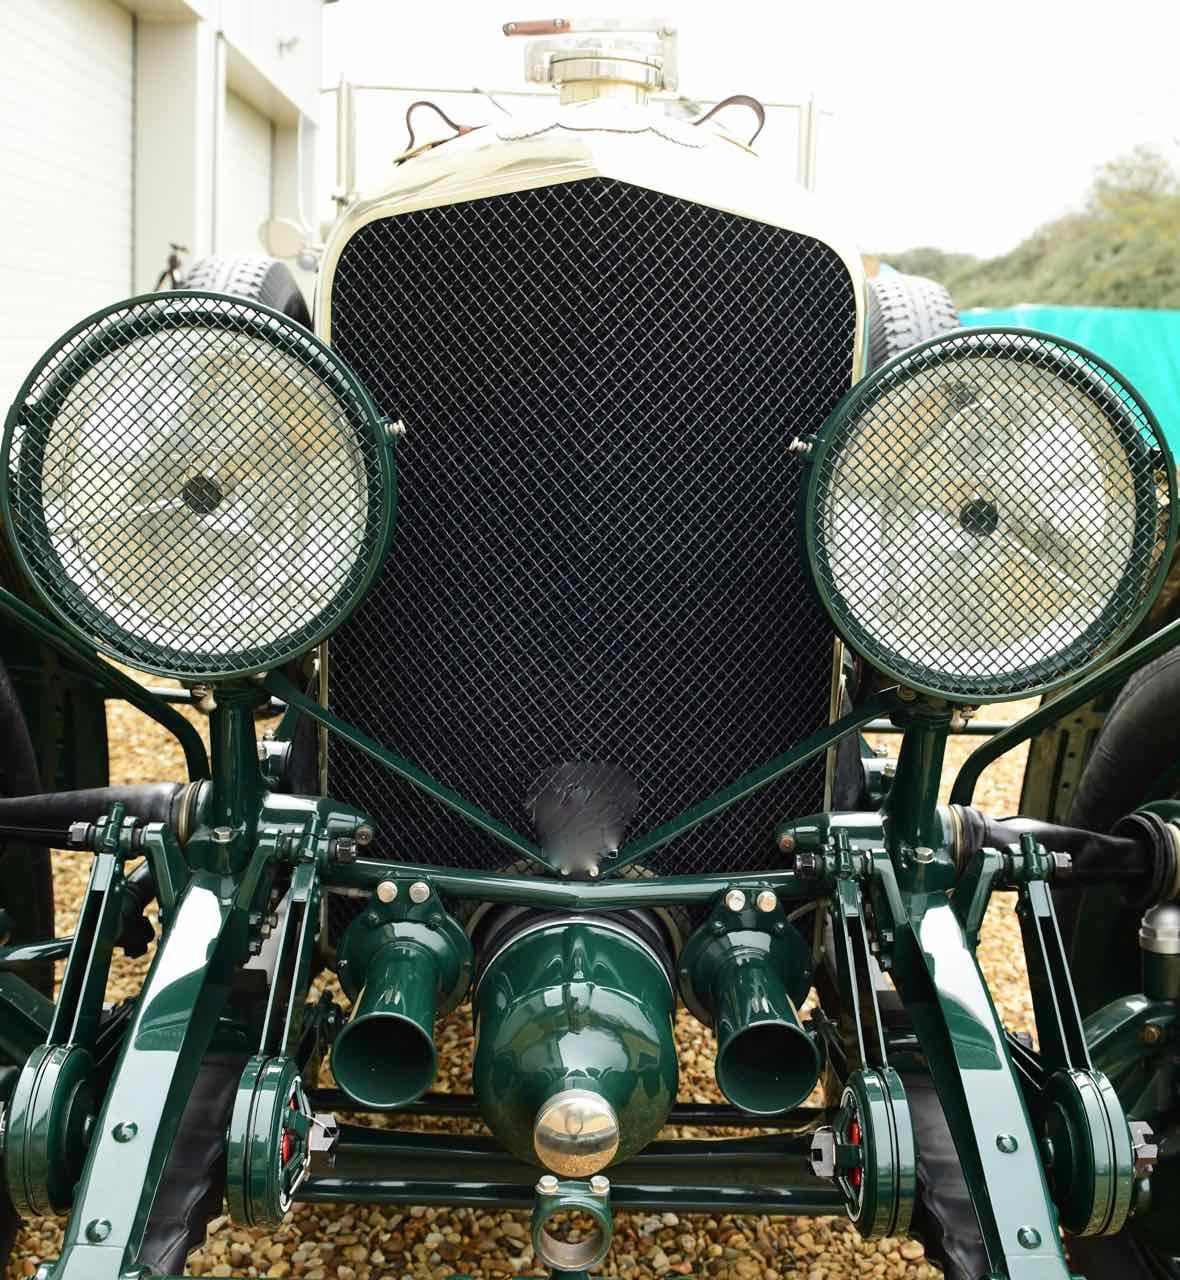 1928 BENTLEY SIX & A HALF LITRE For Sale (picture 2 of 12)